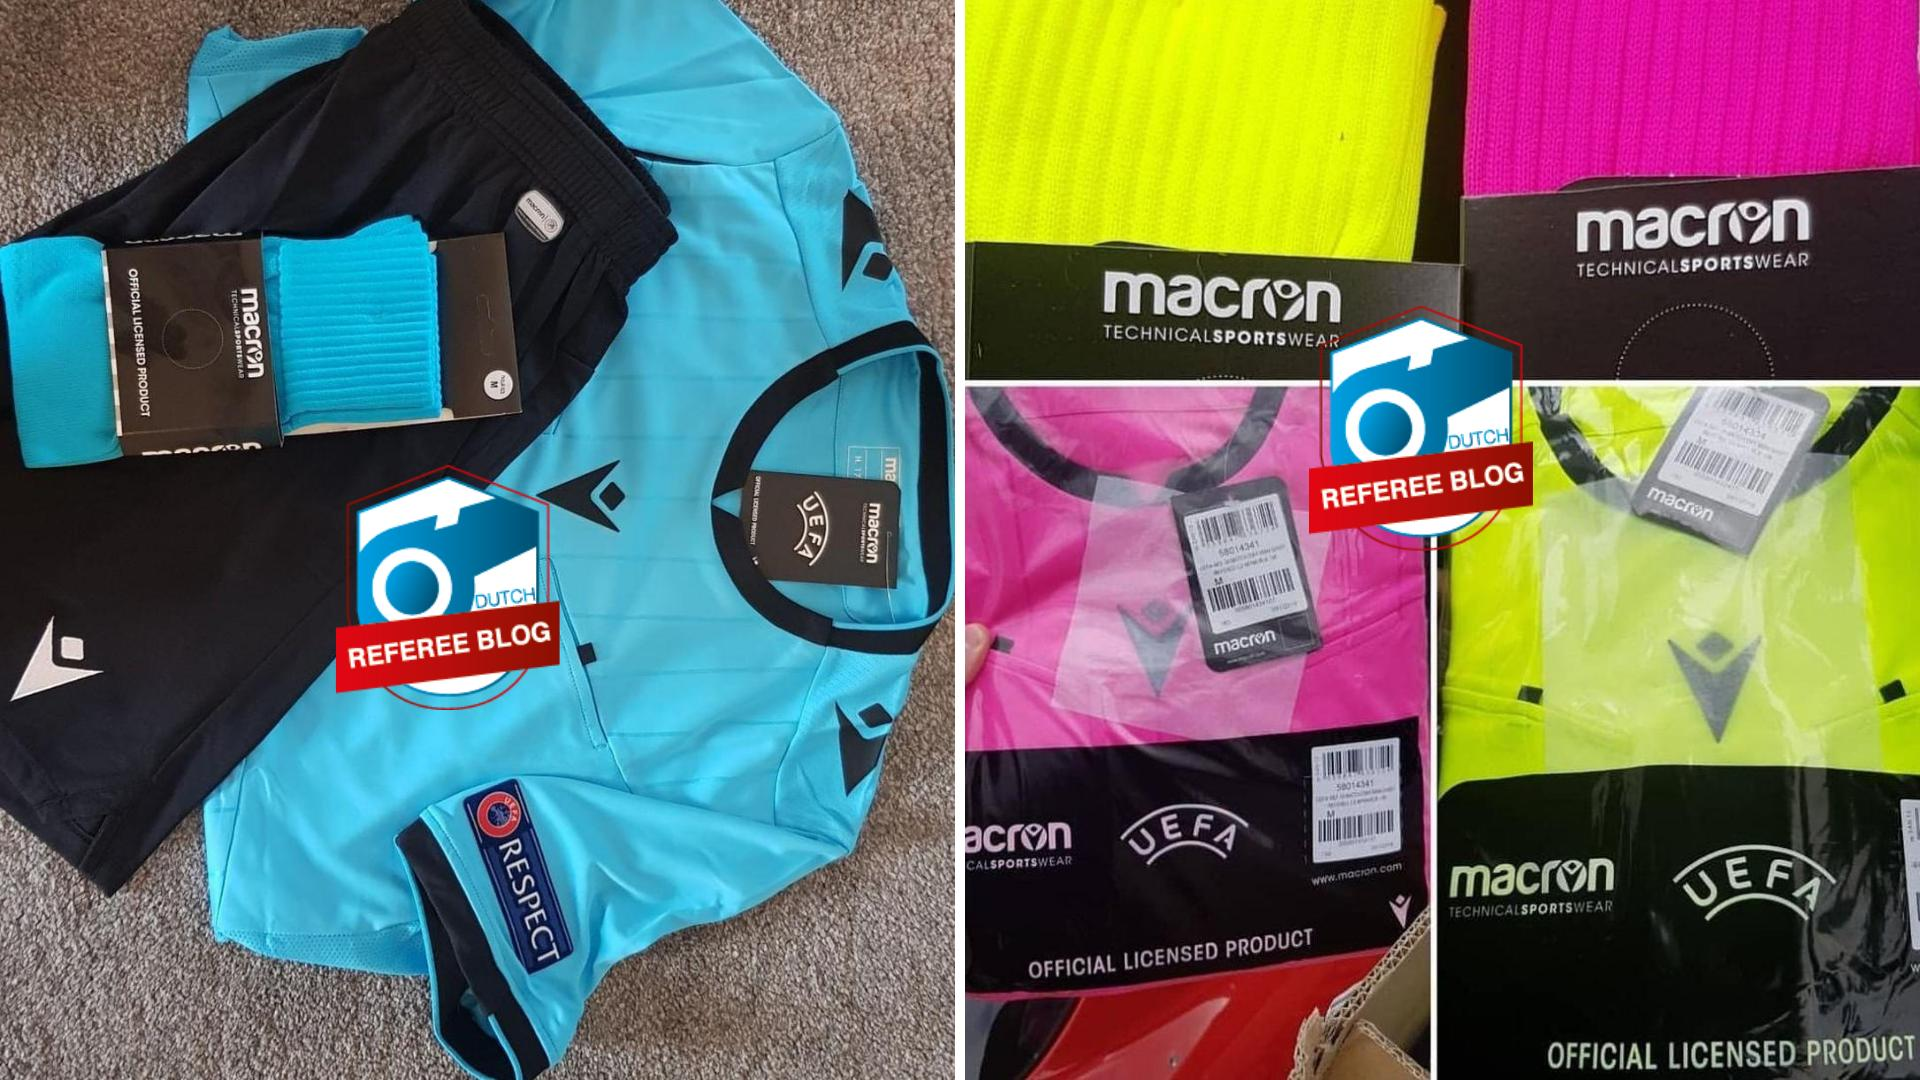 Macron Referee Shirt Uefa Champions League Dutch Referee Blog